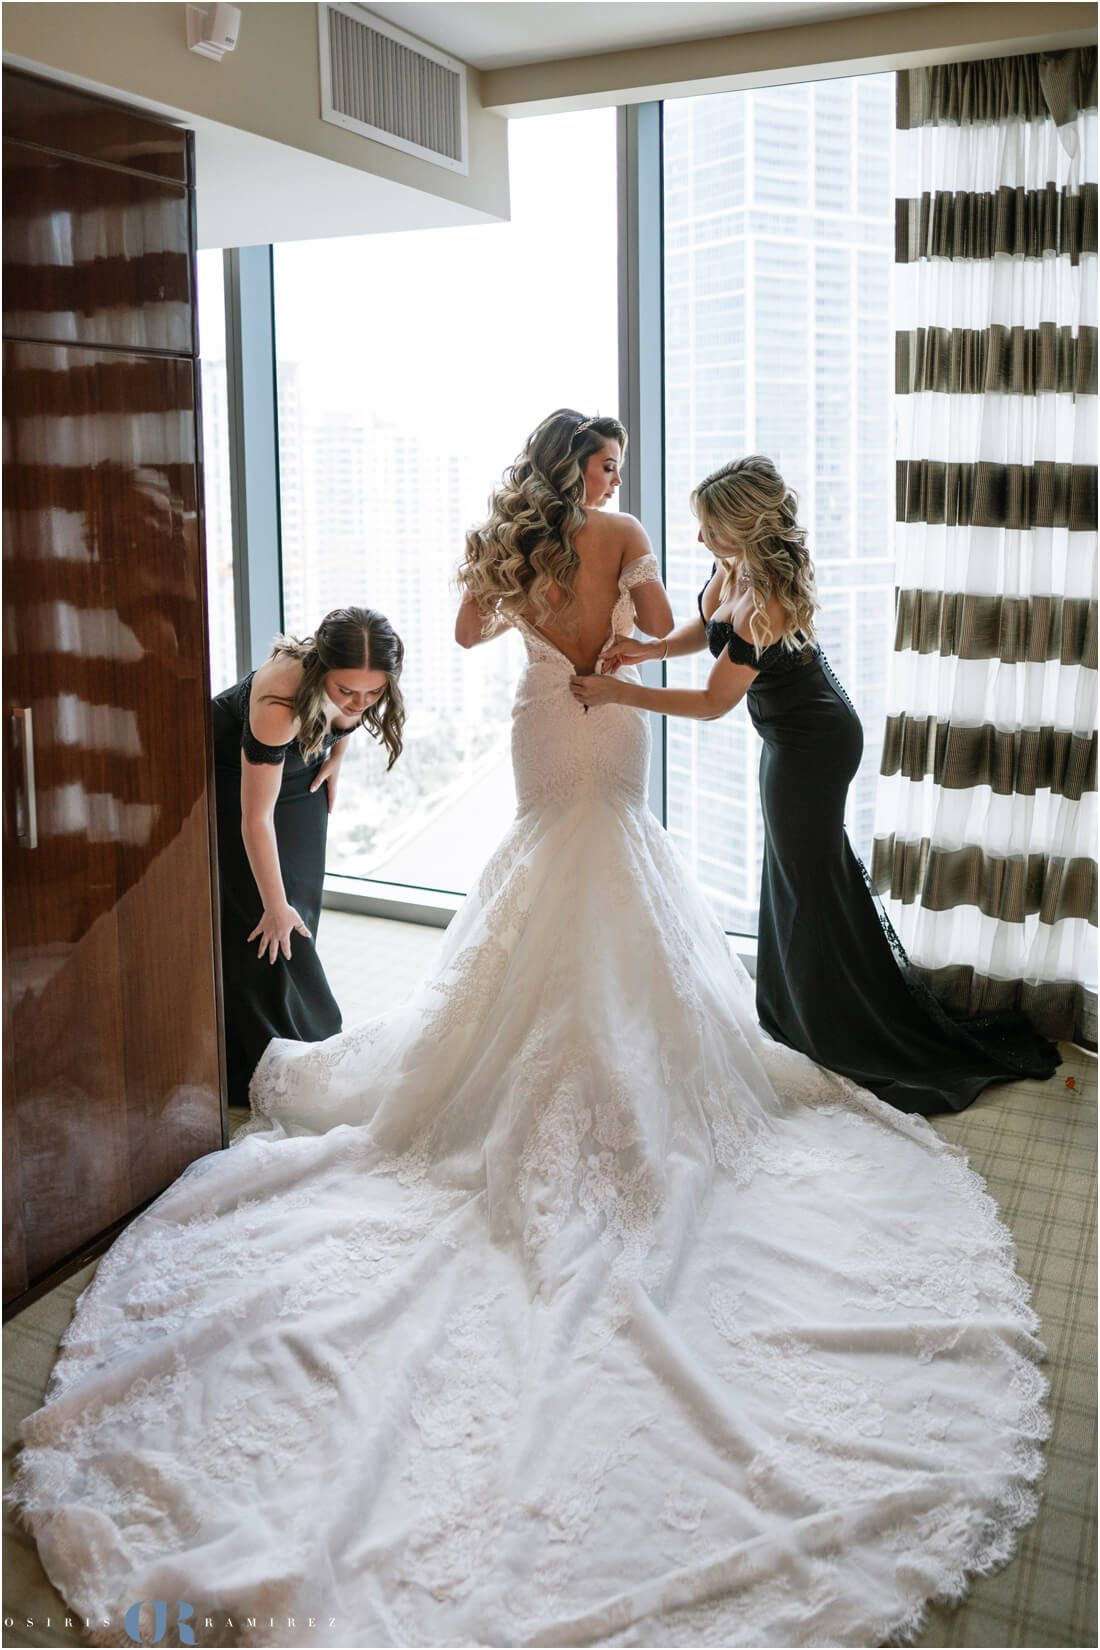 JW Marriott Marquis Miami wedding i